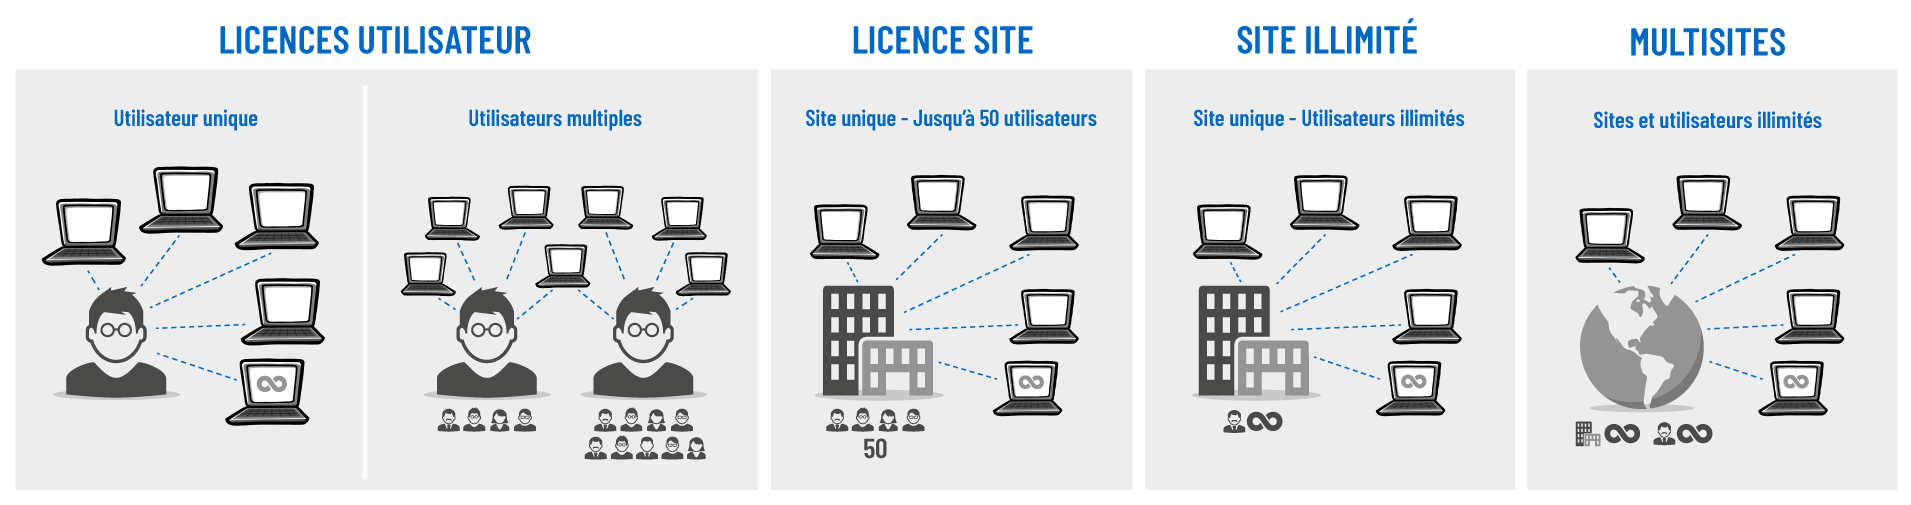 Type of Licensing